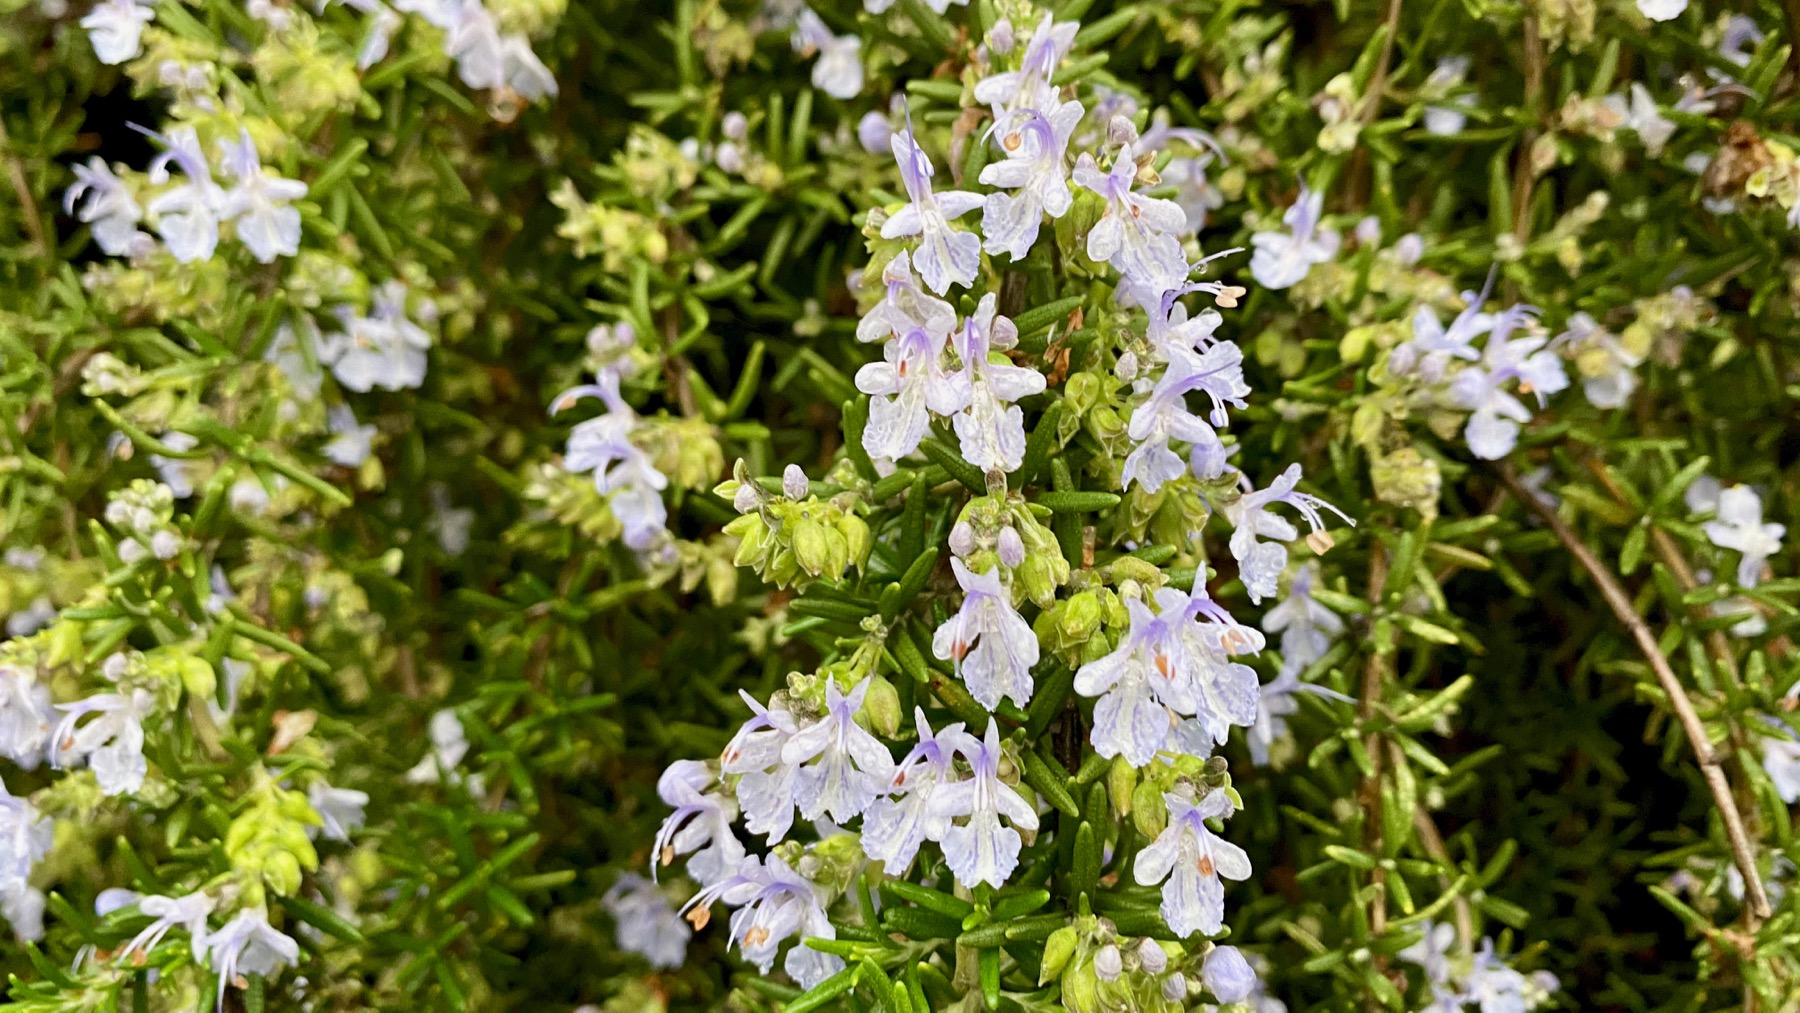 Rosemary blooms